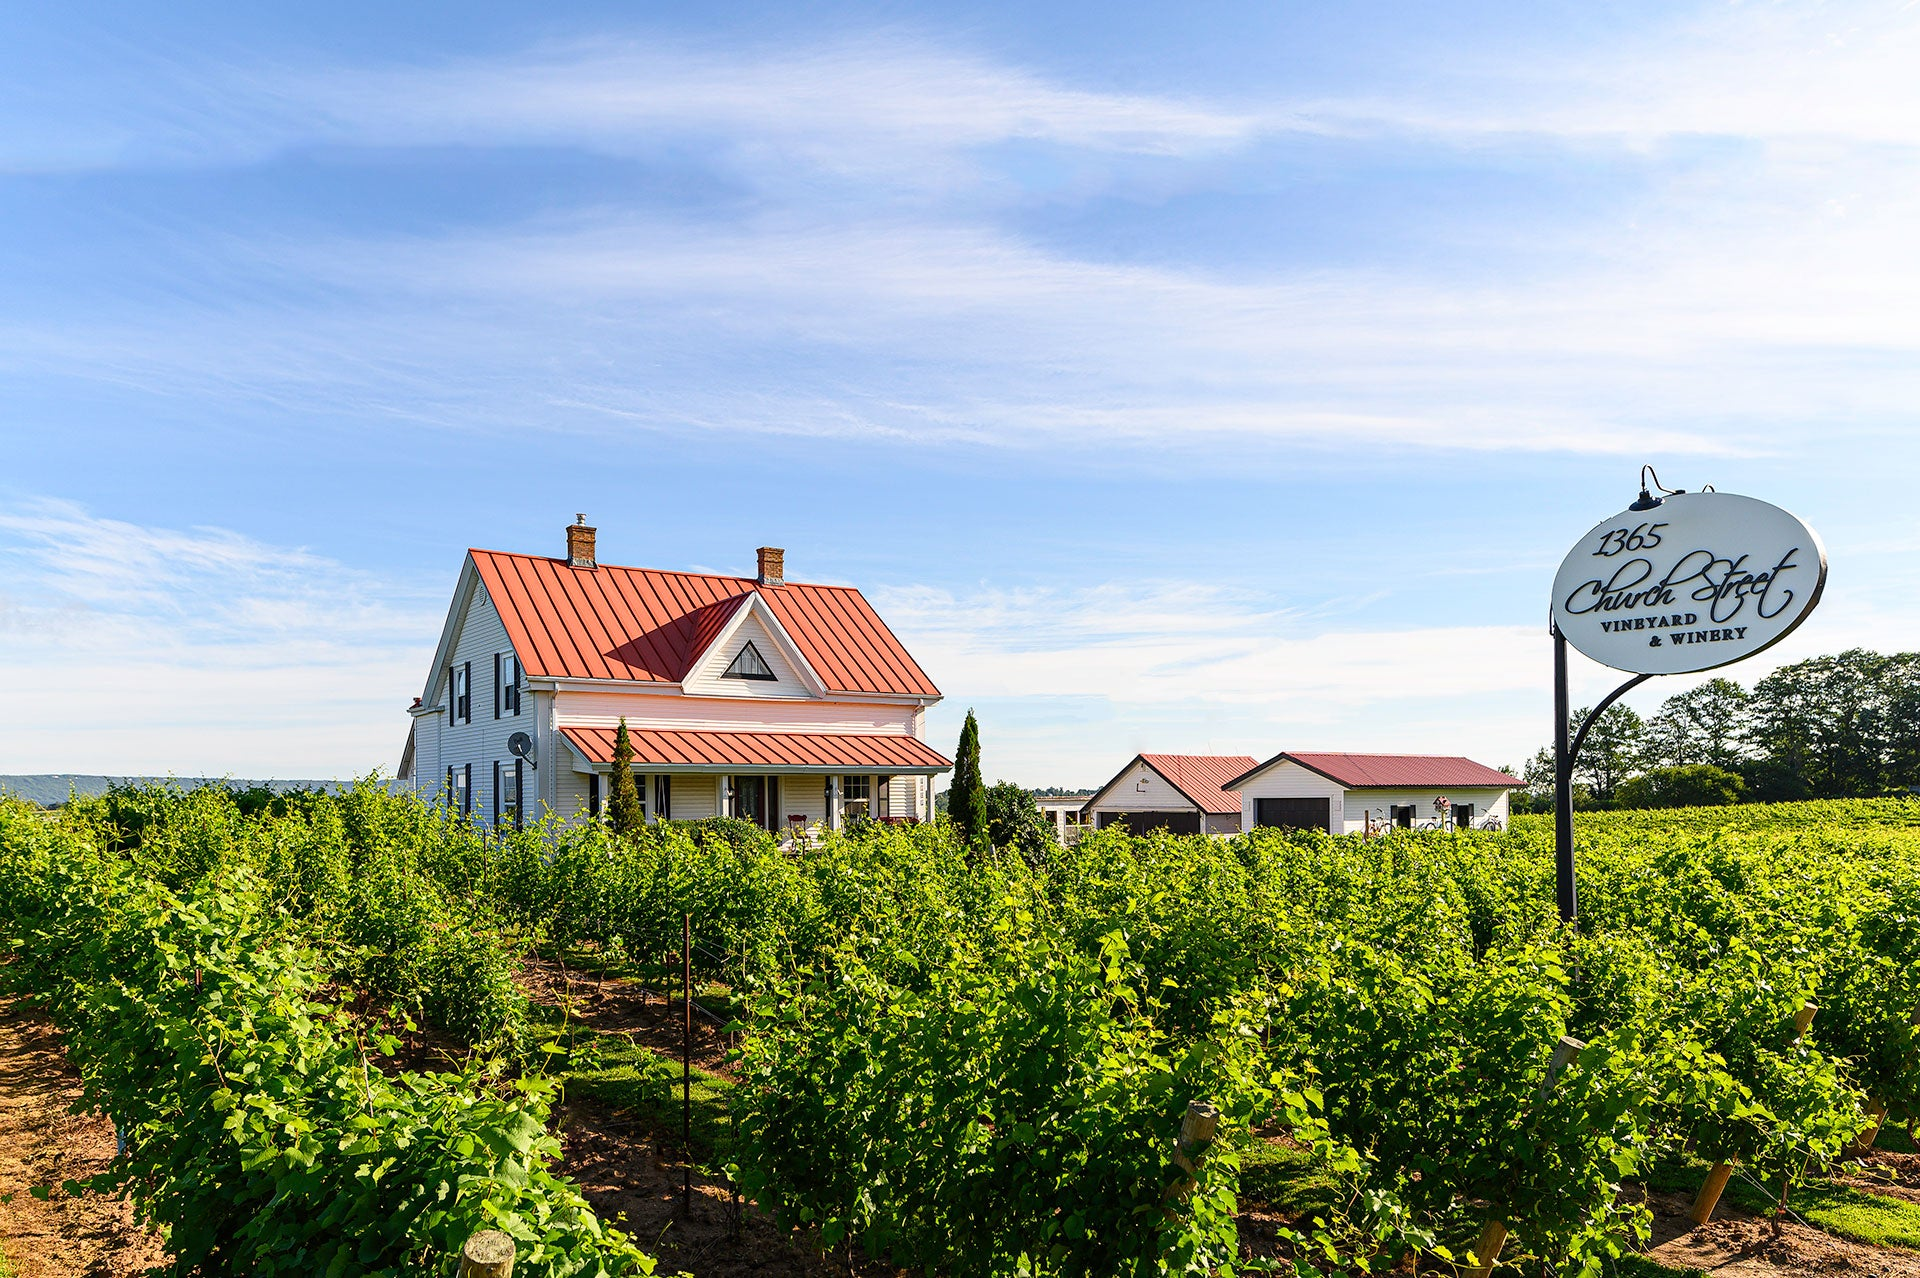 View of the house in a field of vines at 1365 Church Street Vineyard & Winery